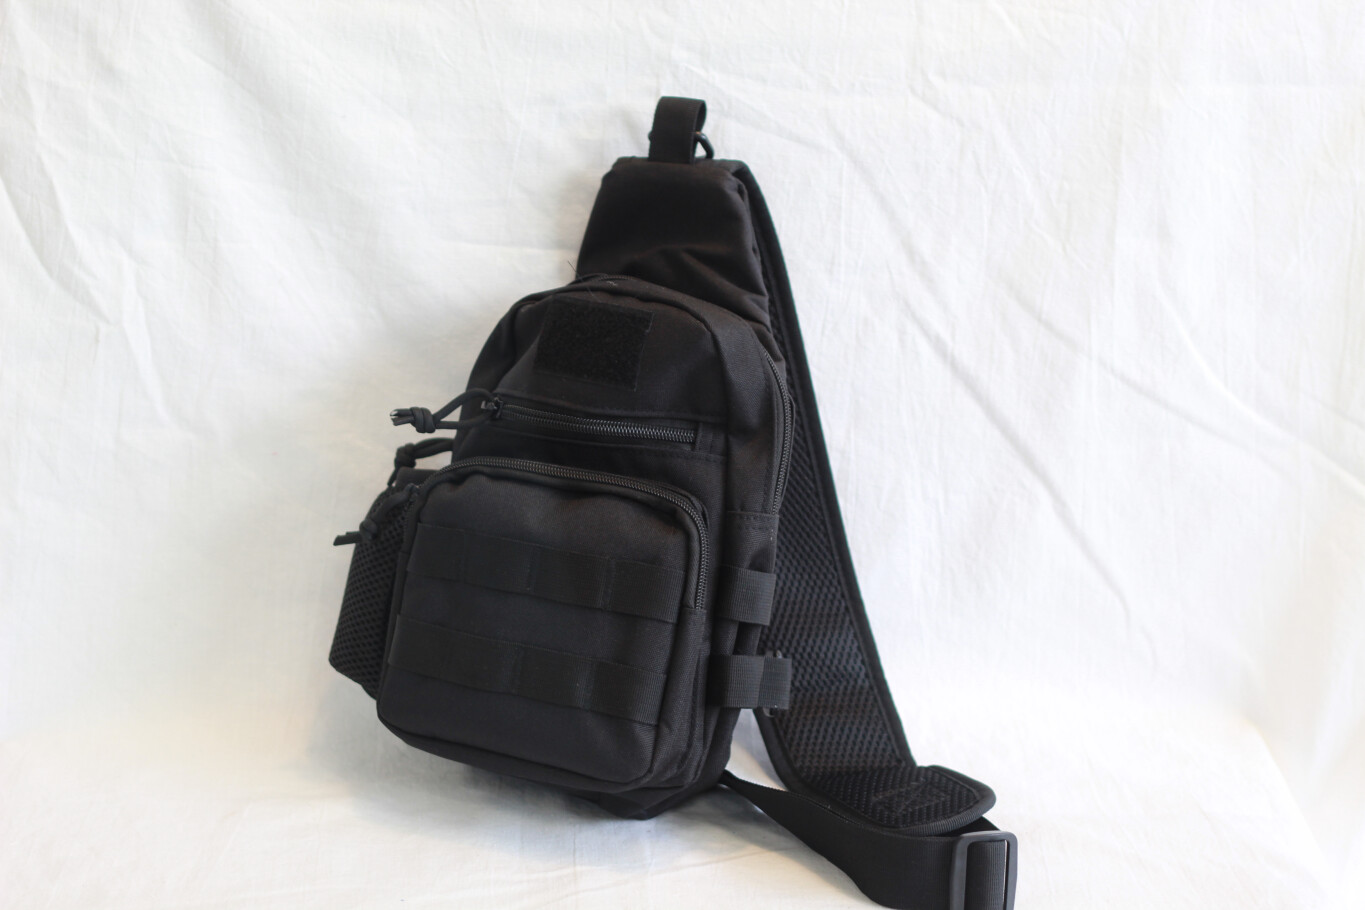 One Shoulder Compartment Backpack Black